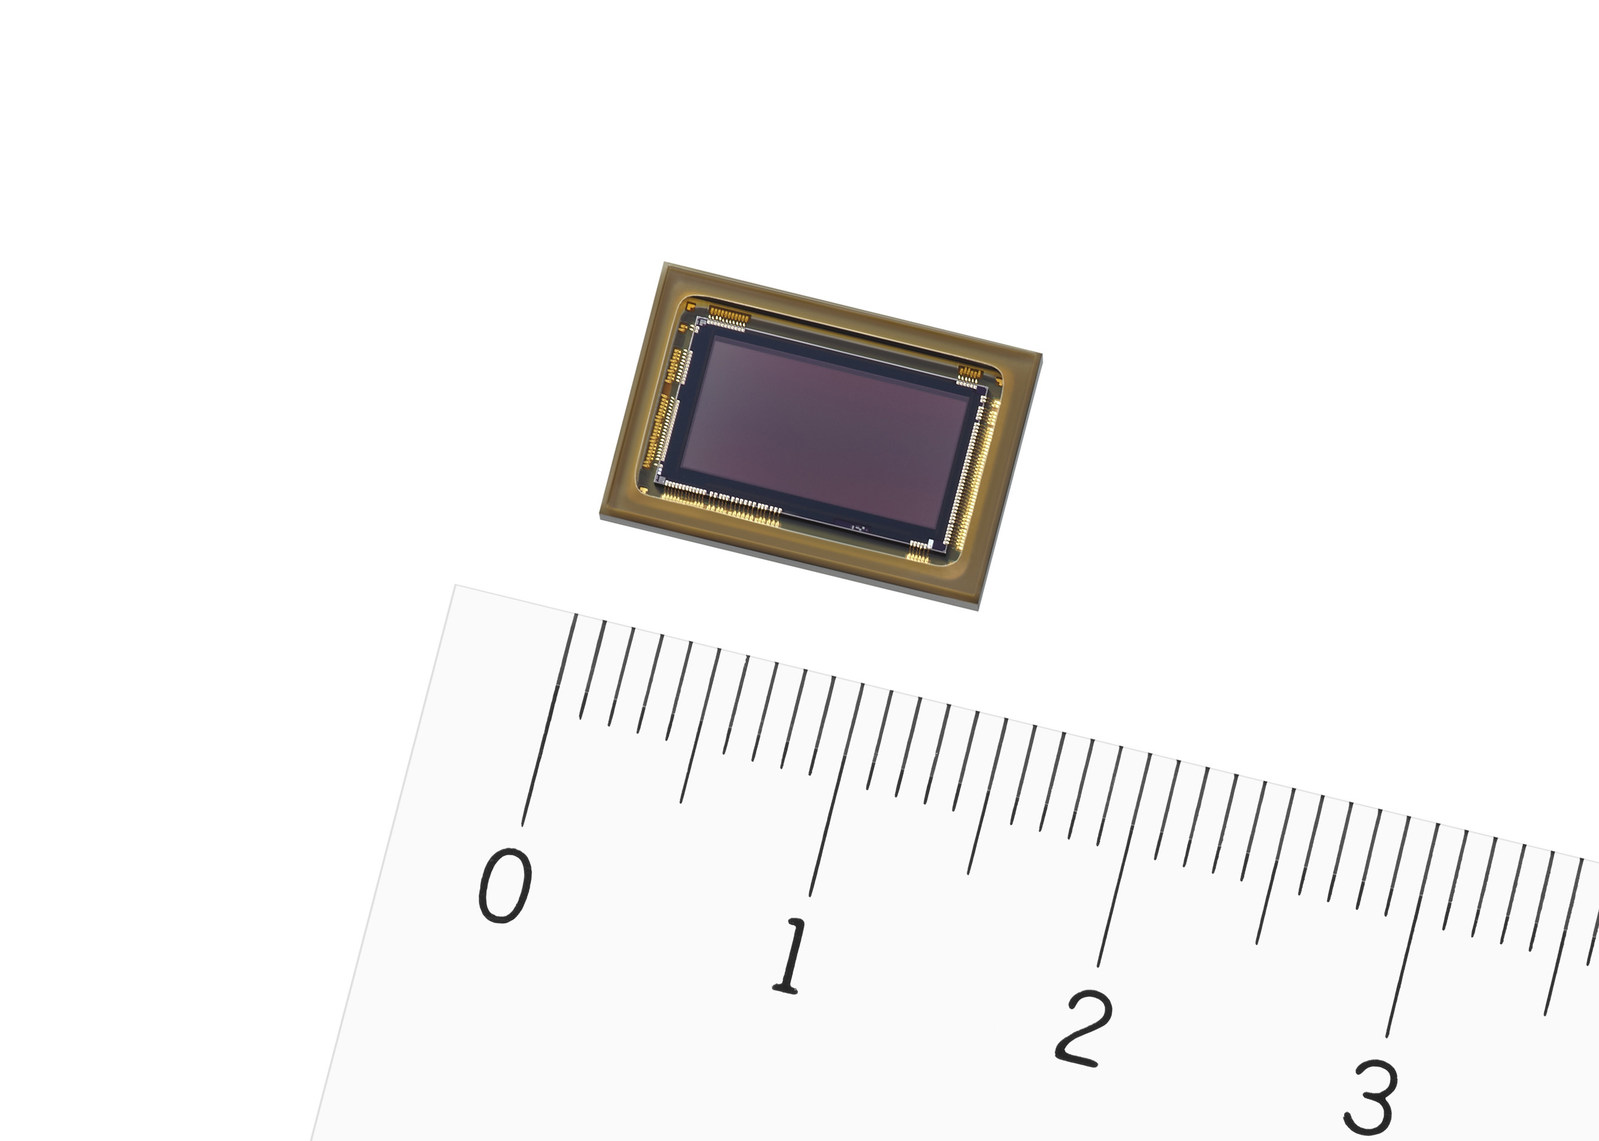 IMX324 CMOS Image Sensor for Automotive Cameras